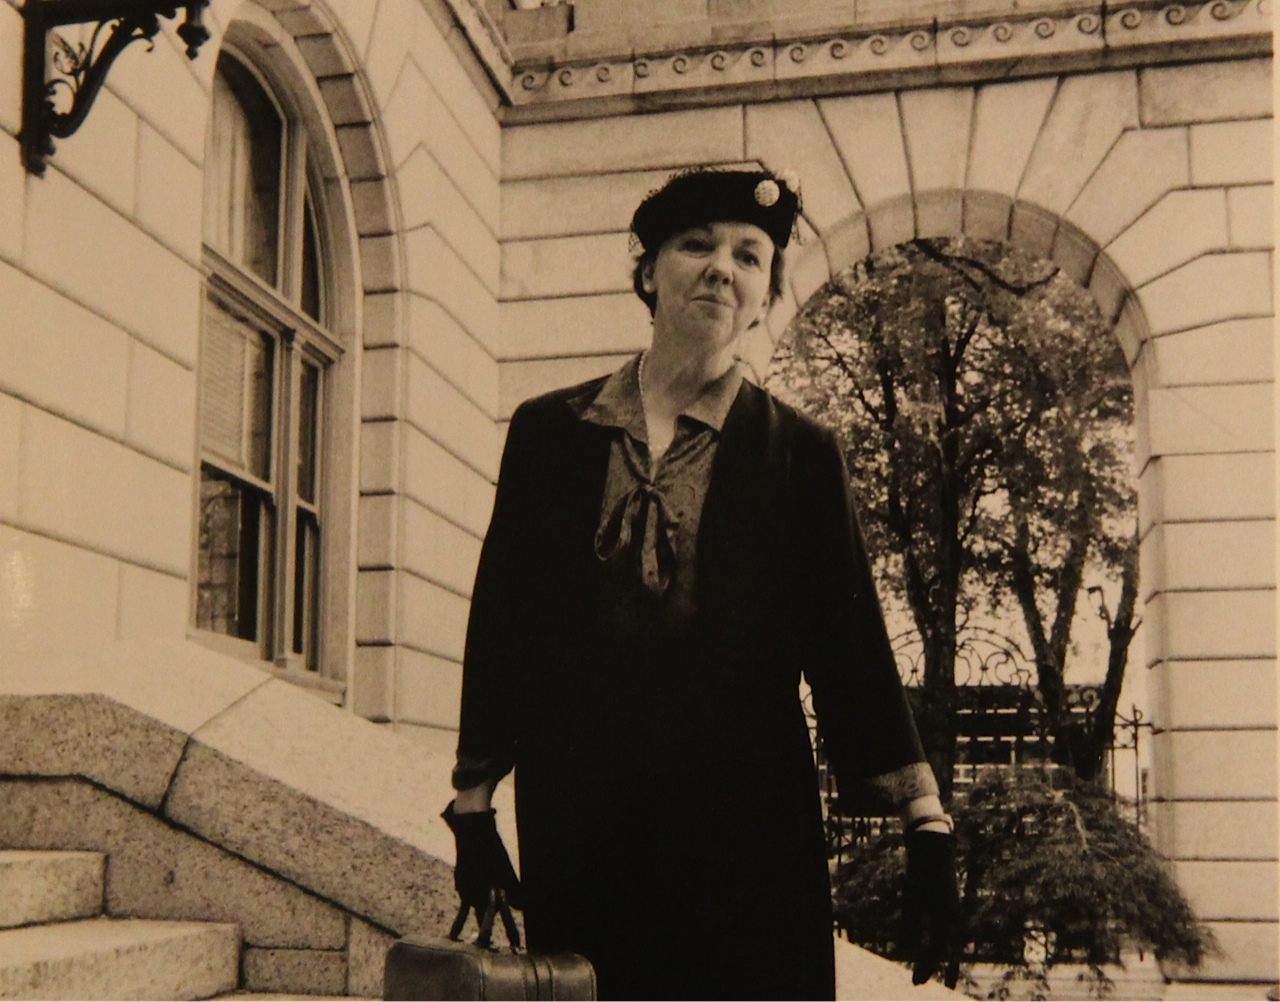 Meet Eleanor Roosevelt, as portrayed in a one-woman show by actress Jane Van Boskirk